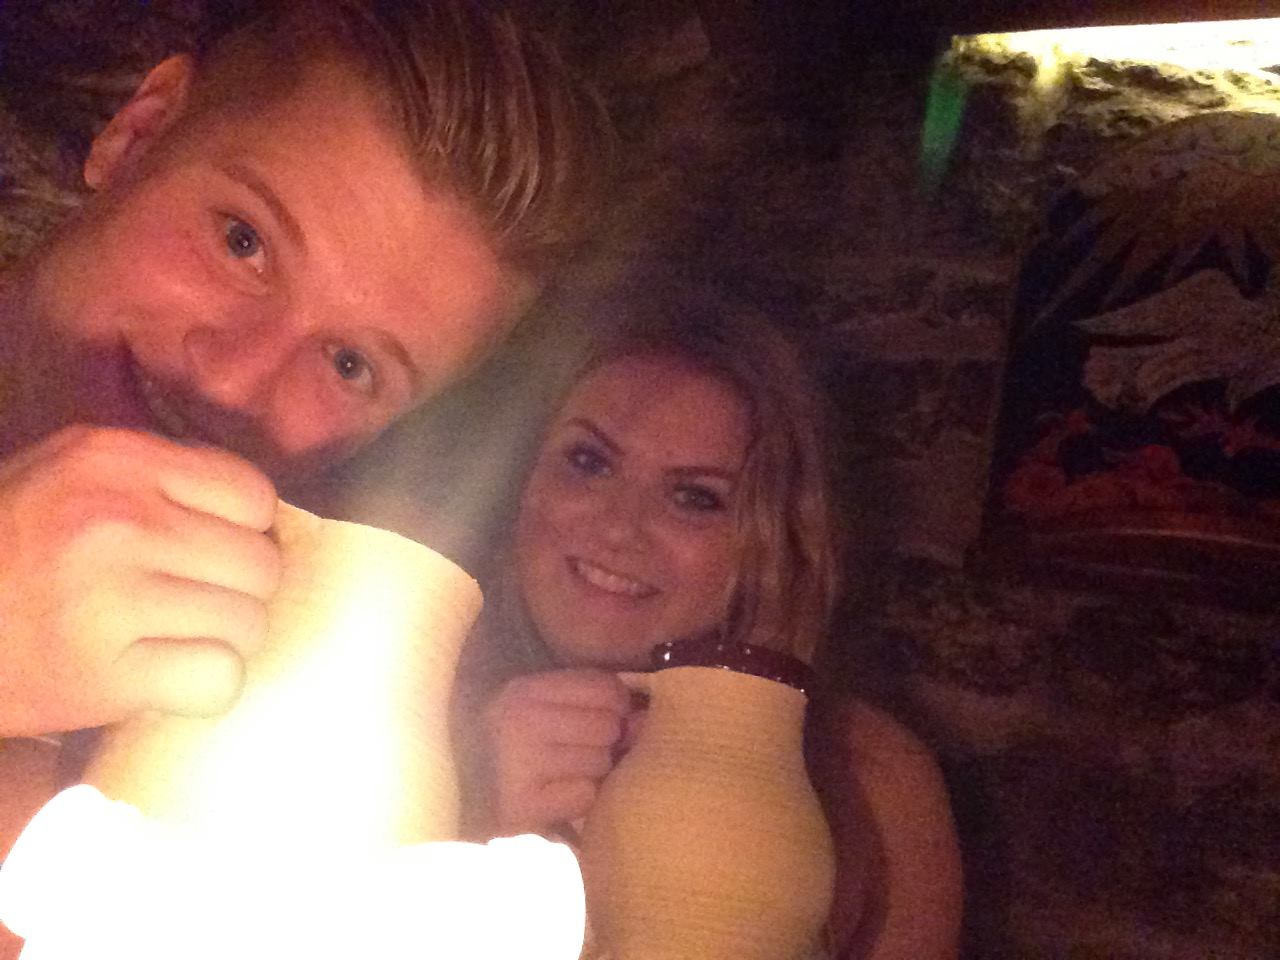 Enjoying our beer from ceramic mugs by candlelight at III Draakon.